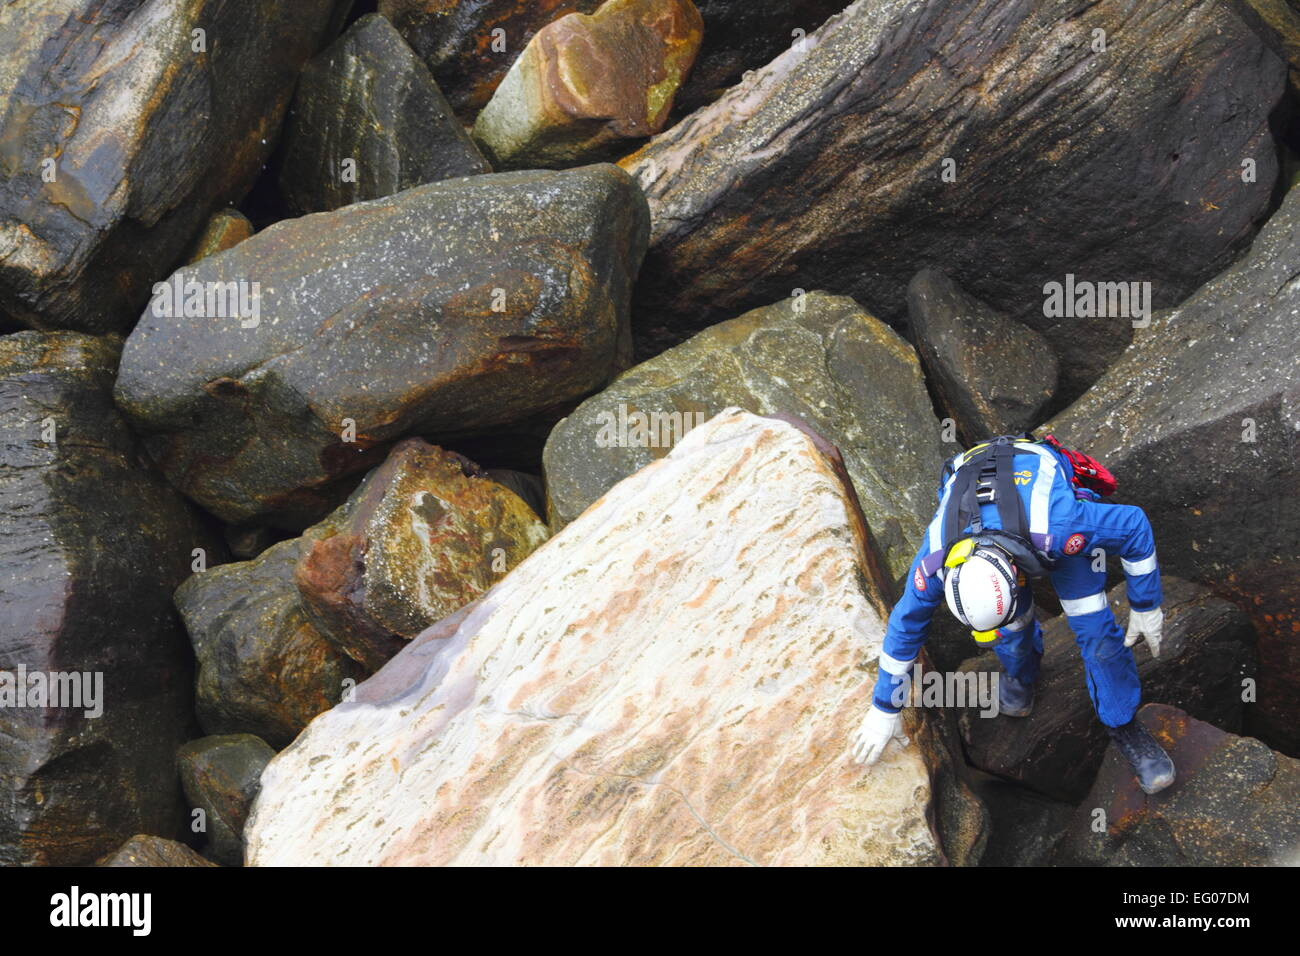 A male member of the Special Operations team, within the Ambulance Service of NSW, conducts search and rescue training. - Stock Image